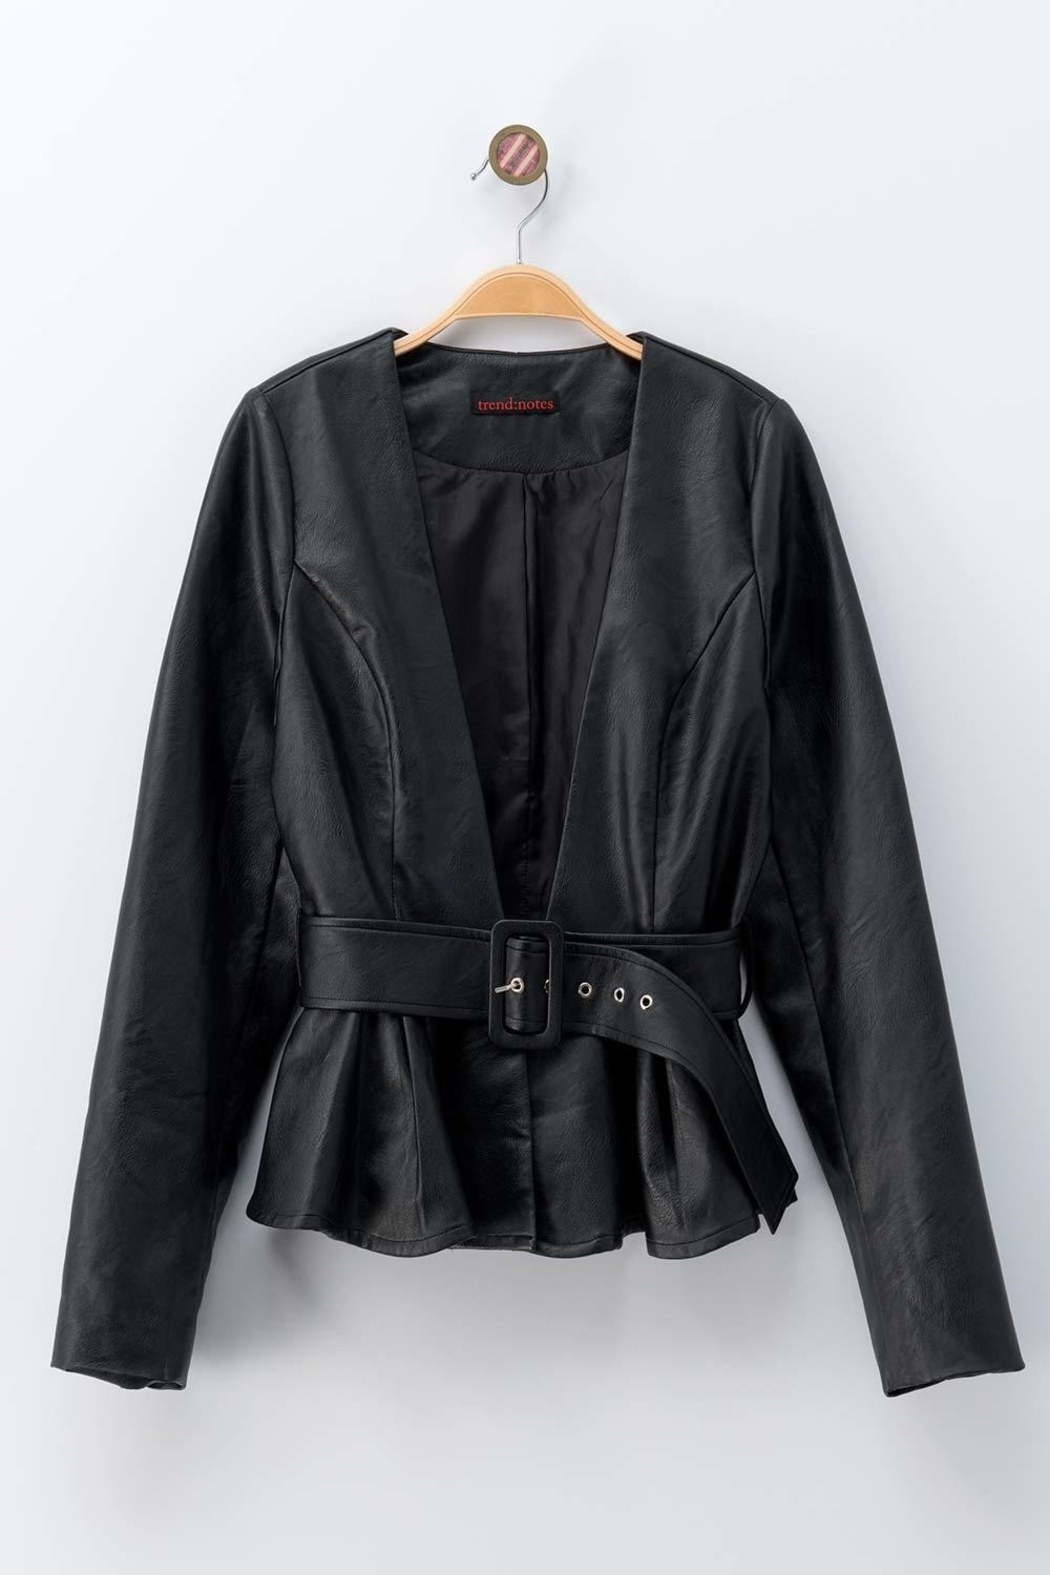 Trend:notes FANCY YOU JACKET - Main Image